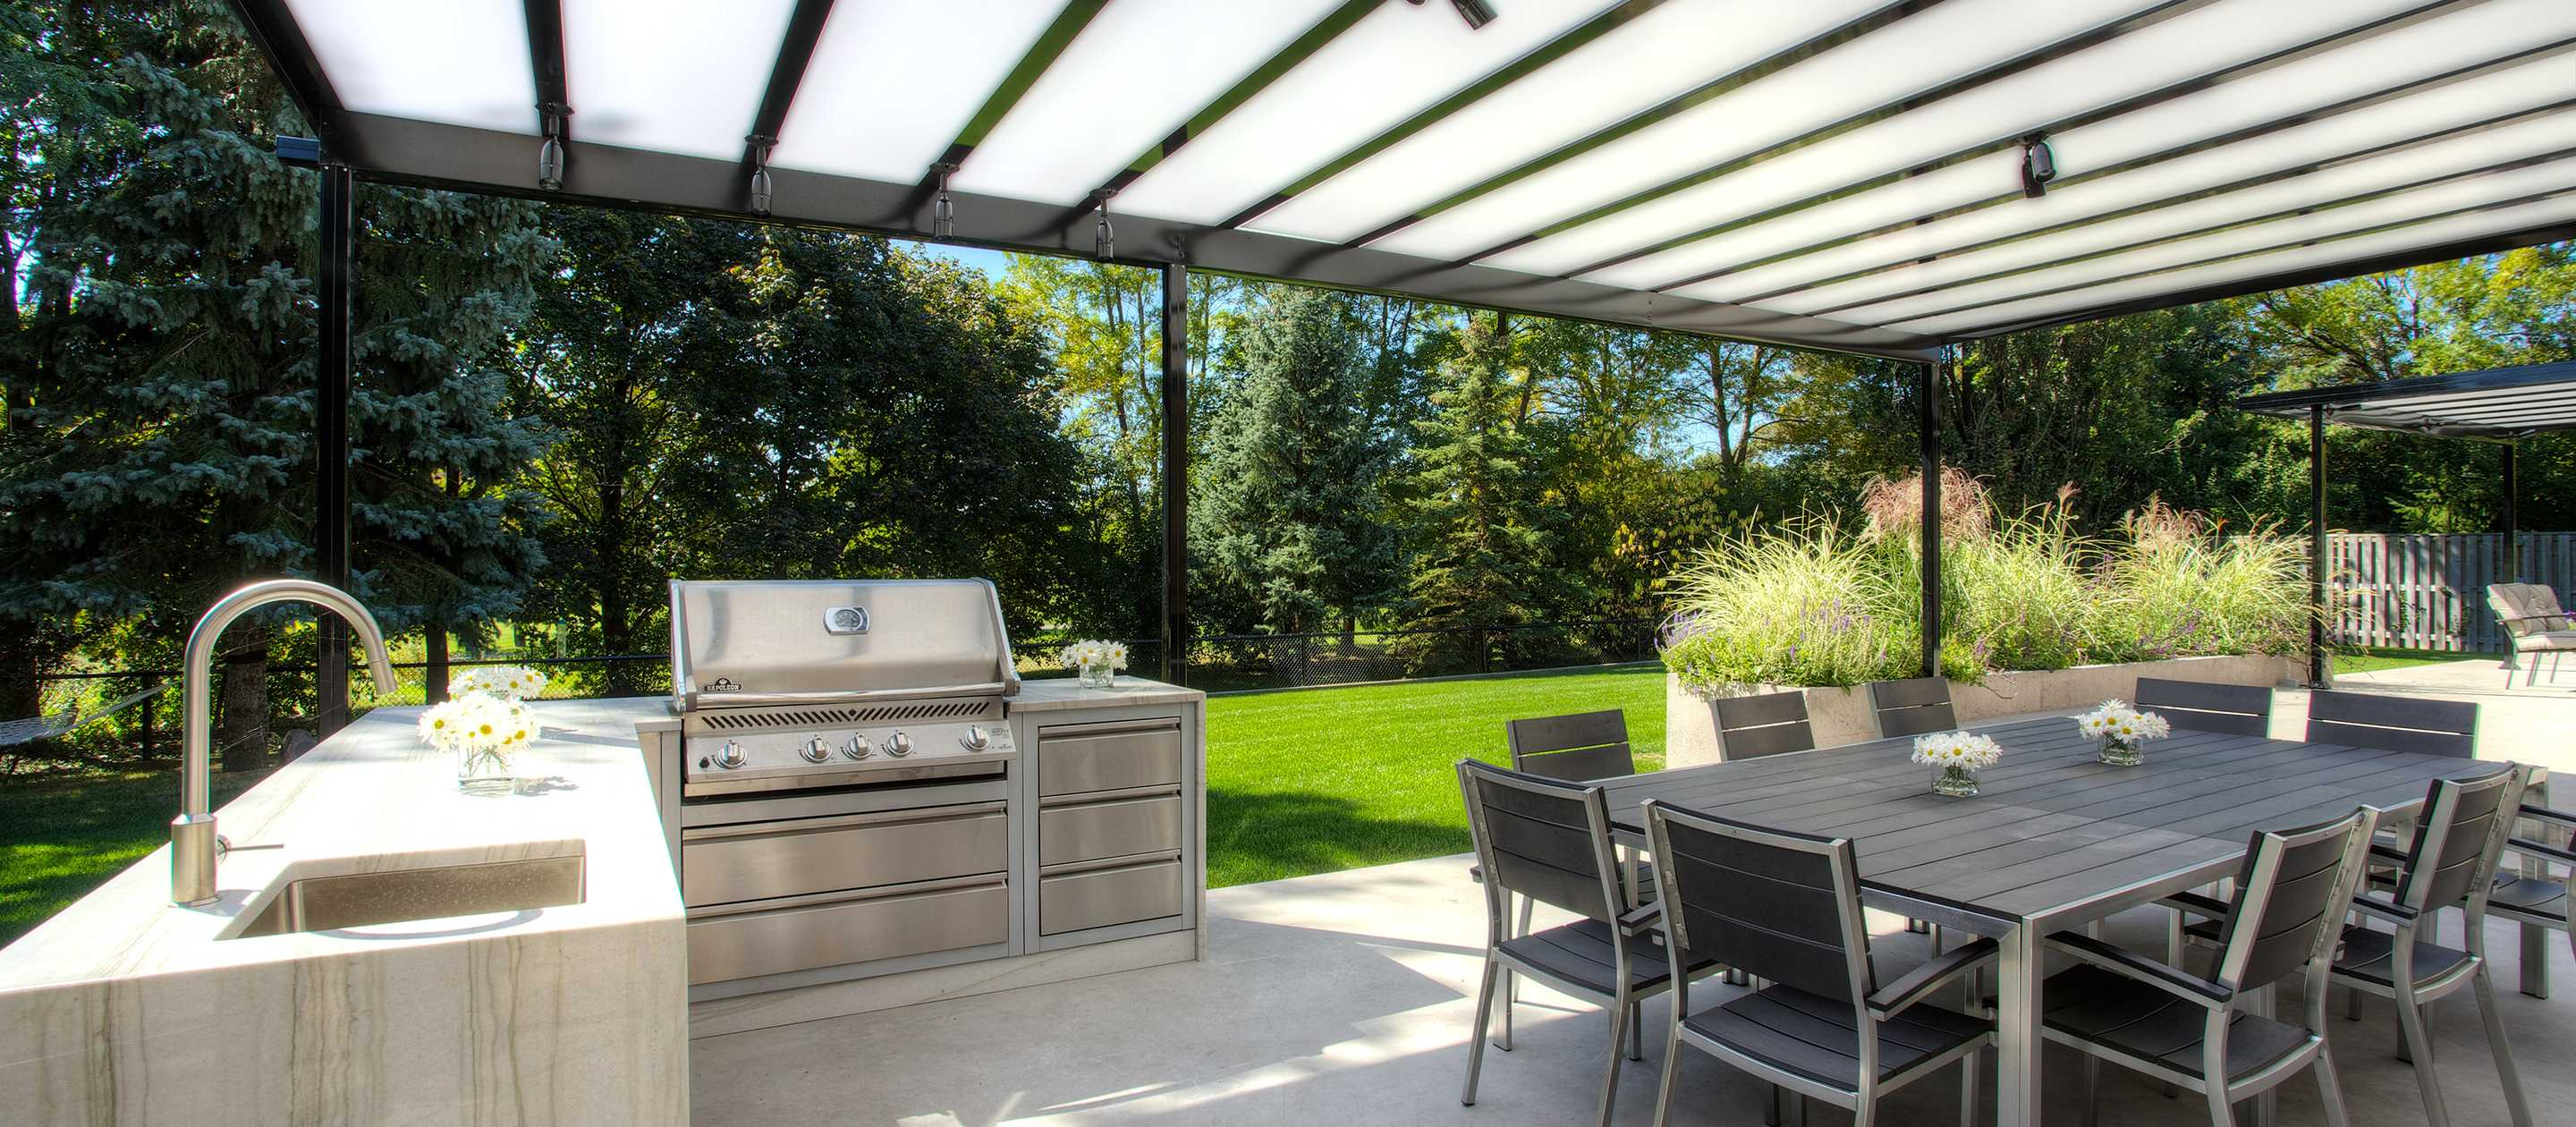 patio covers, patio roof, porch covers, deck cover, deck covering, patio cover companies, patio covers in buffalo, affordable patio cover companies, patio cover options